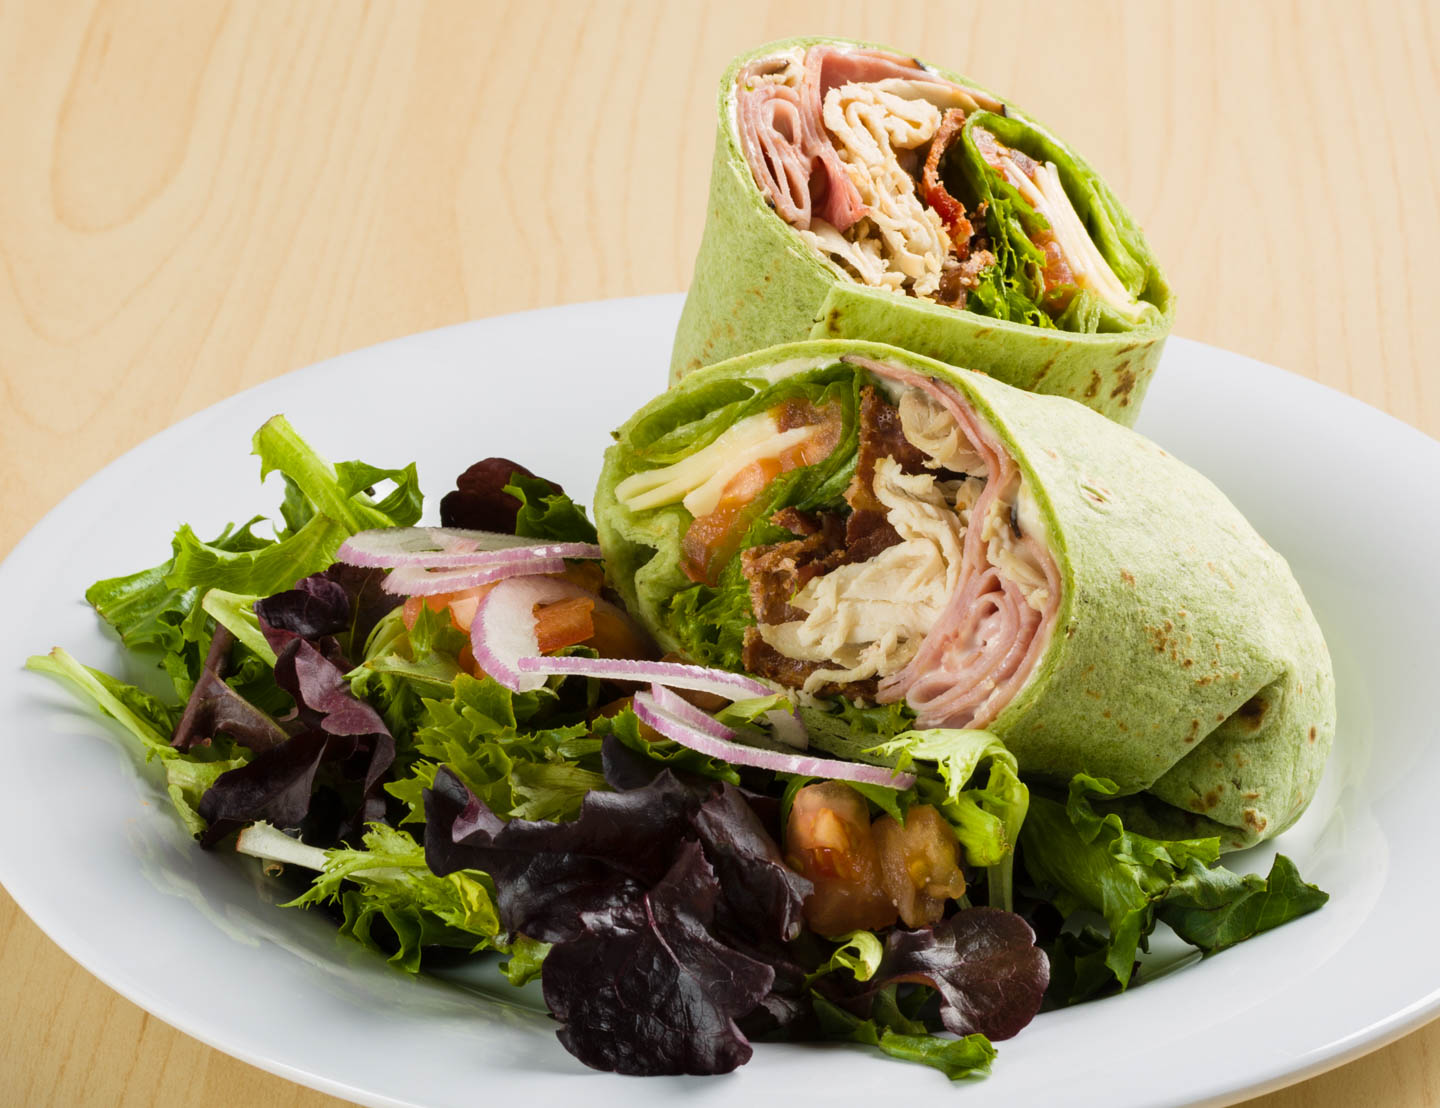 Smokehouse club wrap with bacon